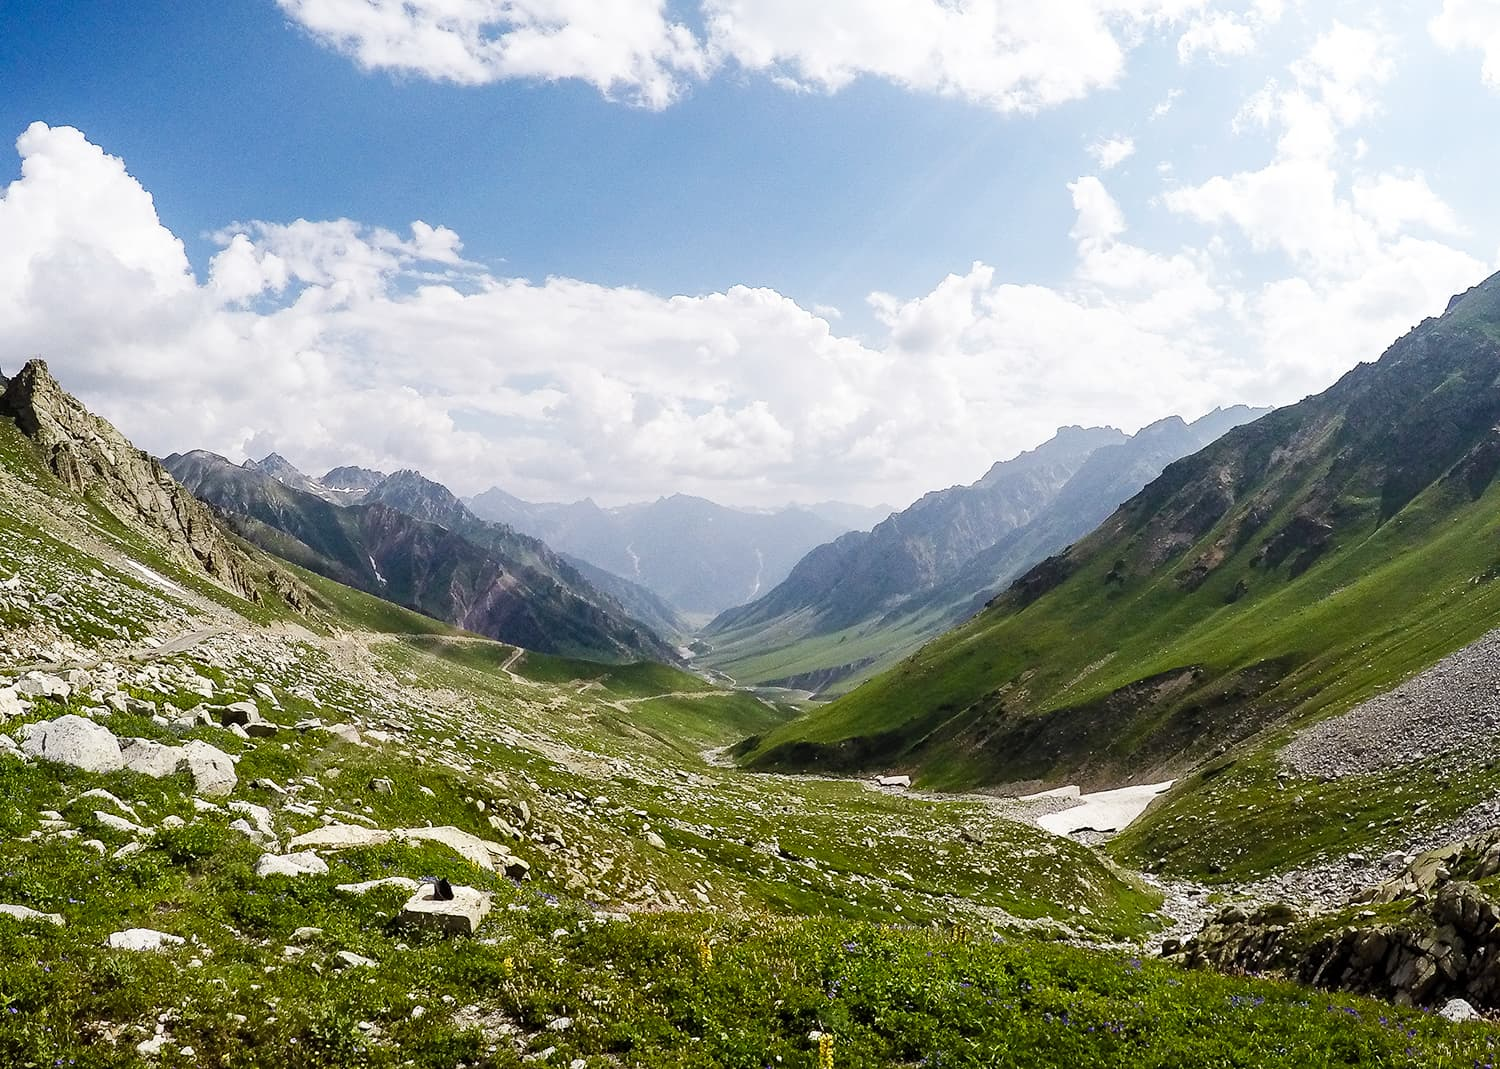 The road to Minimarg.